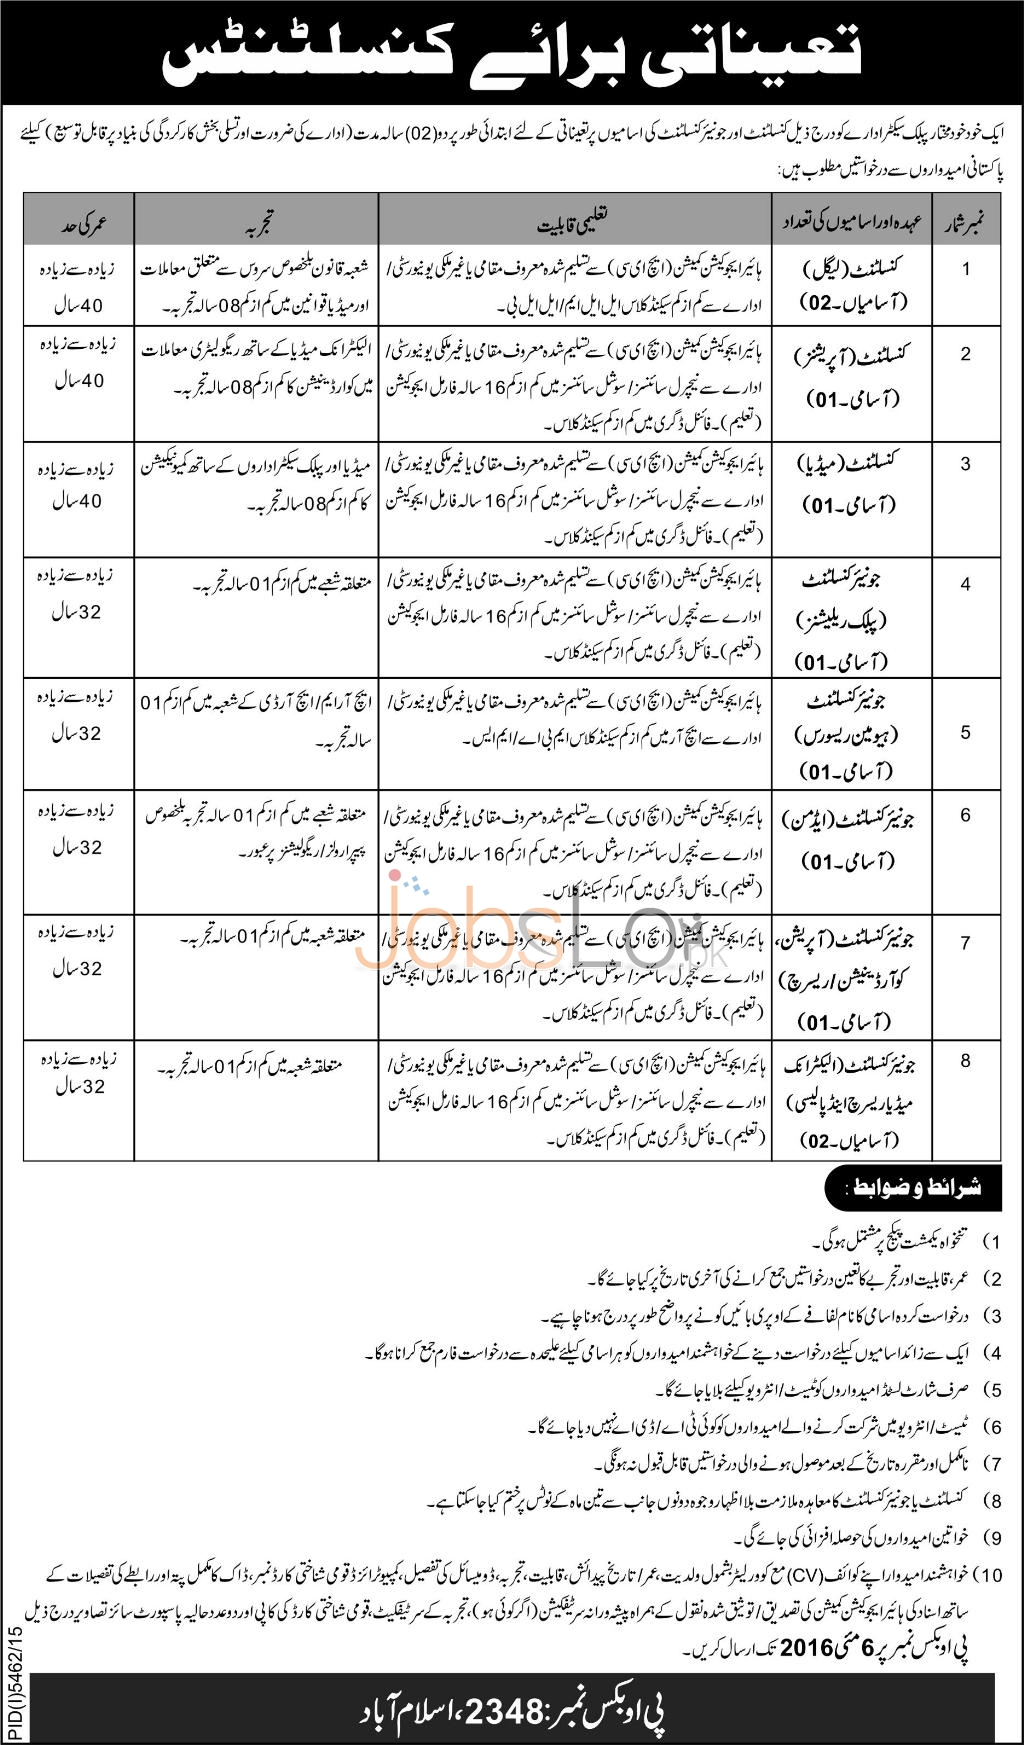 Public Sector Organization Jobs